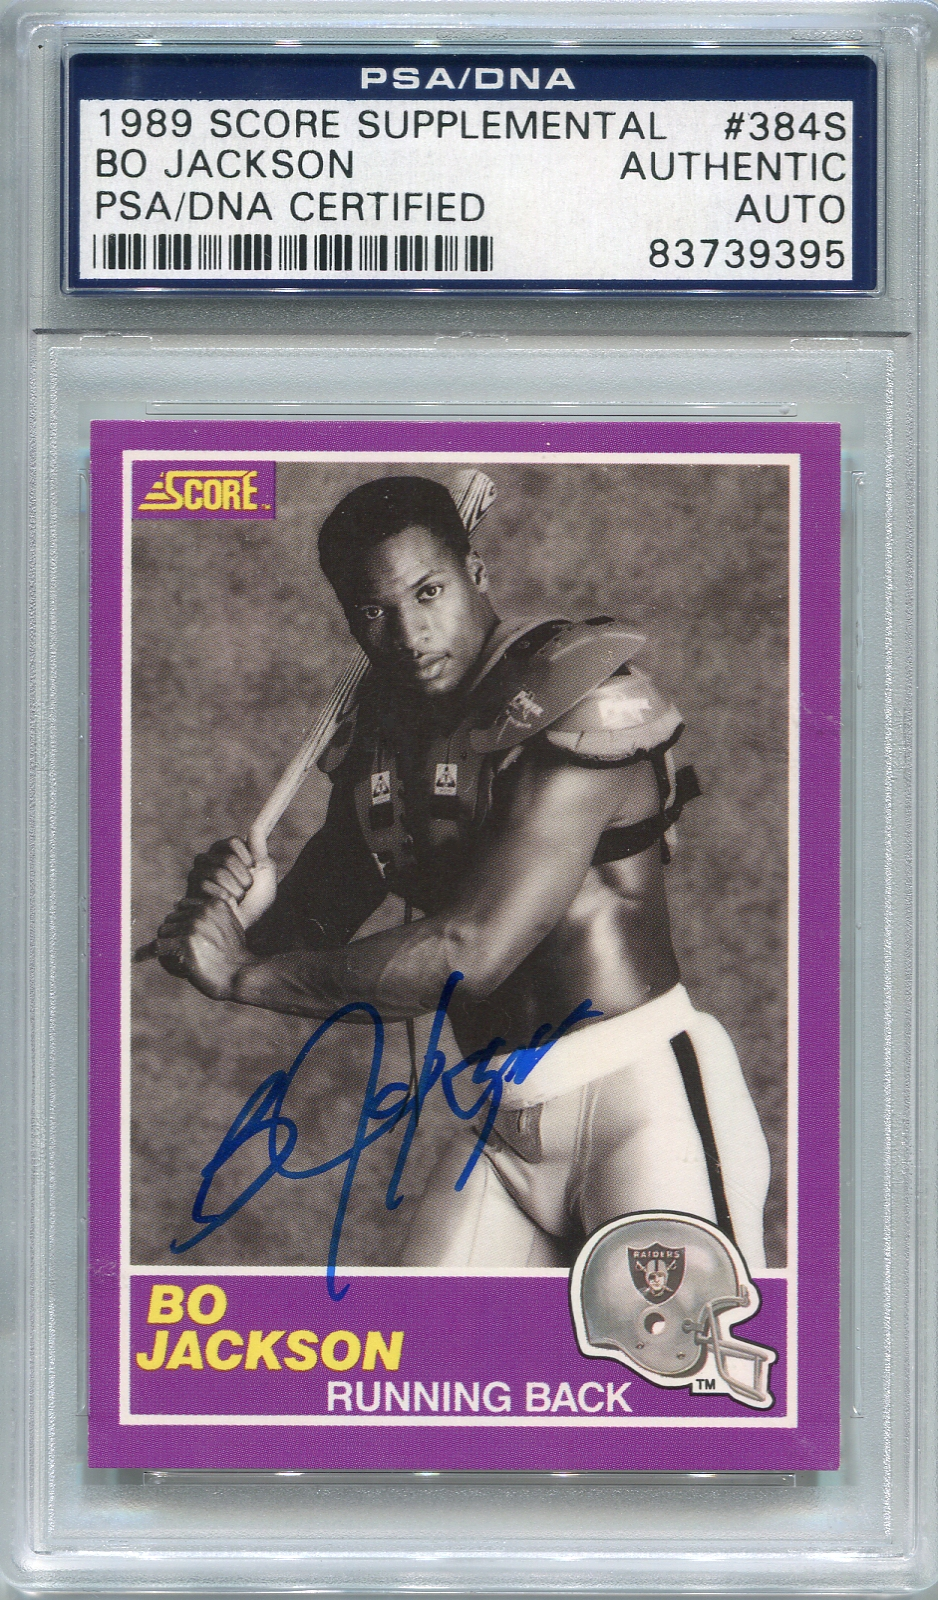 Bo Jackson PSA/DNA Certified Authentic Autograph - 1989 Score Supplemental #384S